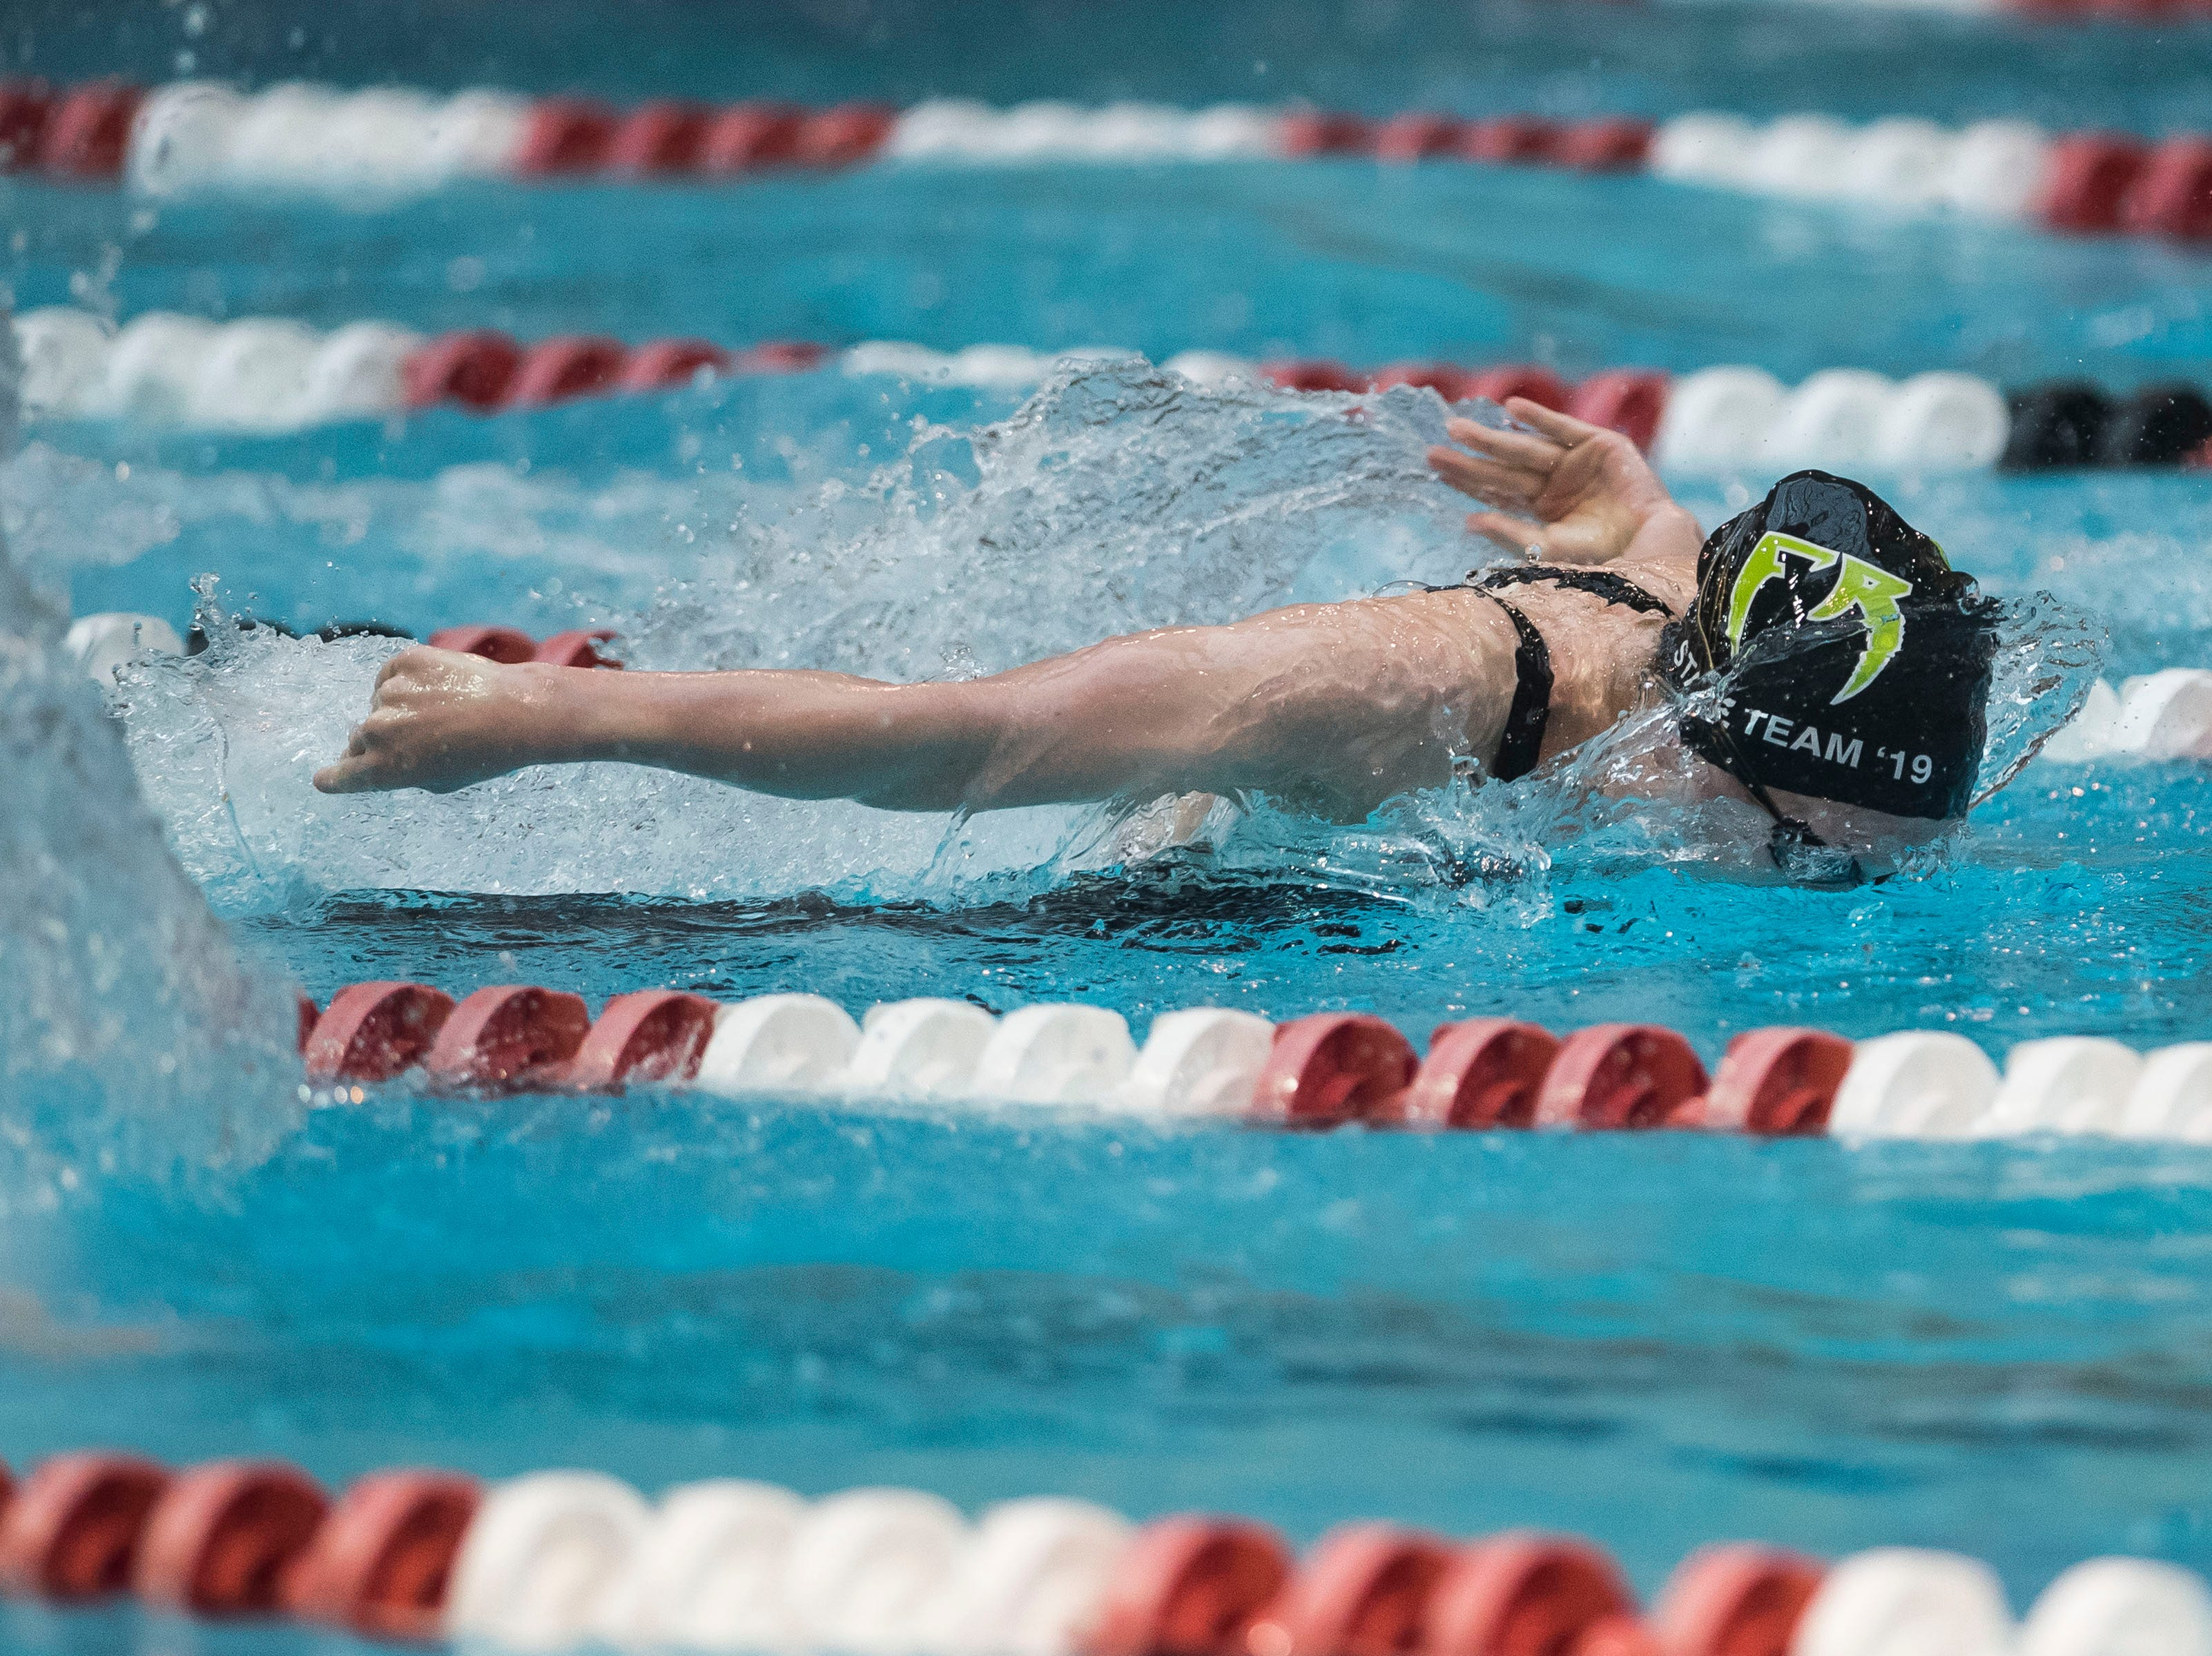 Fossil Ridge sophomore Emily Rinker competes in the women's 200 yard individual medley on Saturday, Feb. 9, 2019, at Veterans Memorial Aquatic Center in Thornton, Colo.